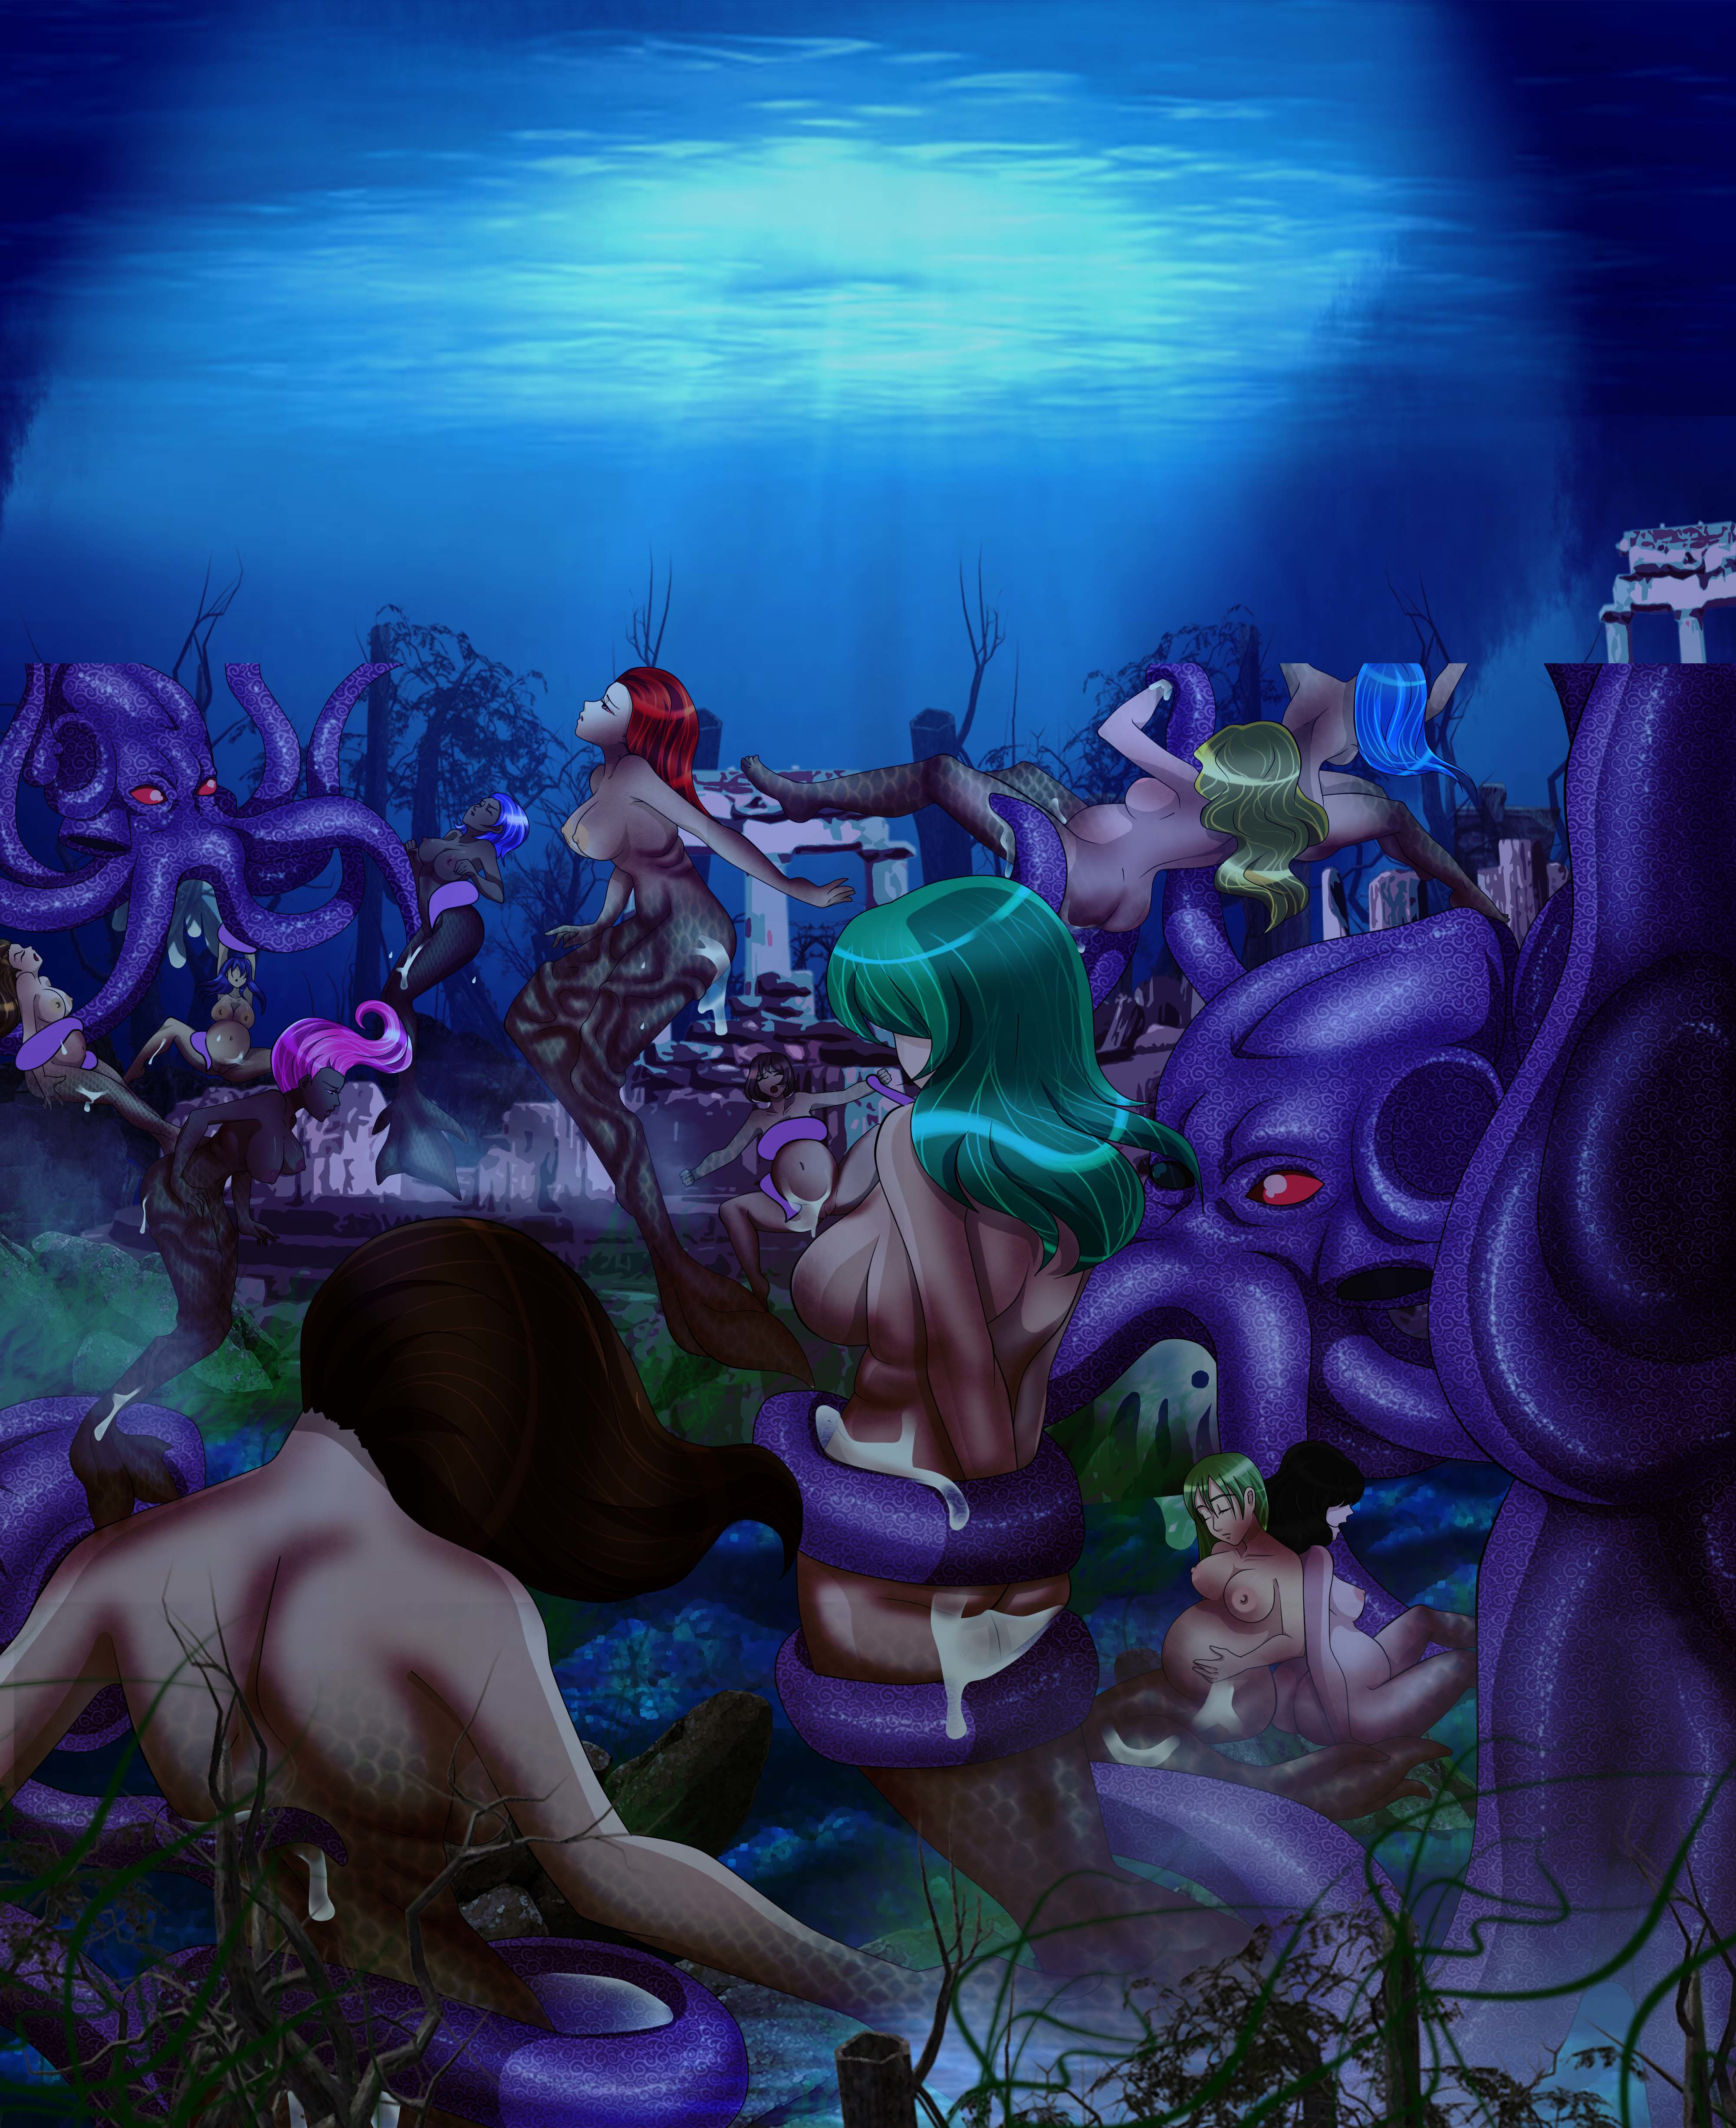 An imagined undersea realm of tentacle monsters and naked girls done by Dark Vanessa.